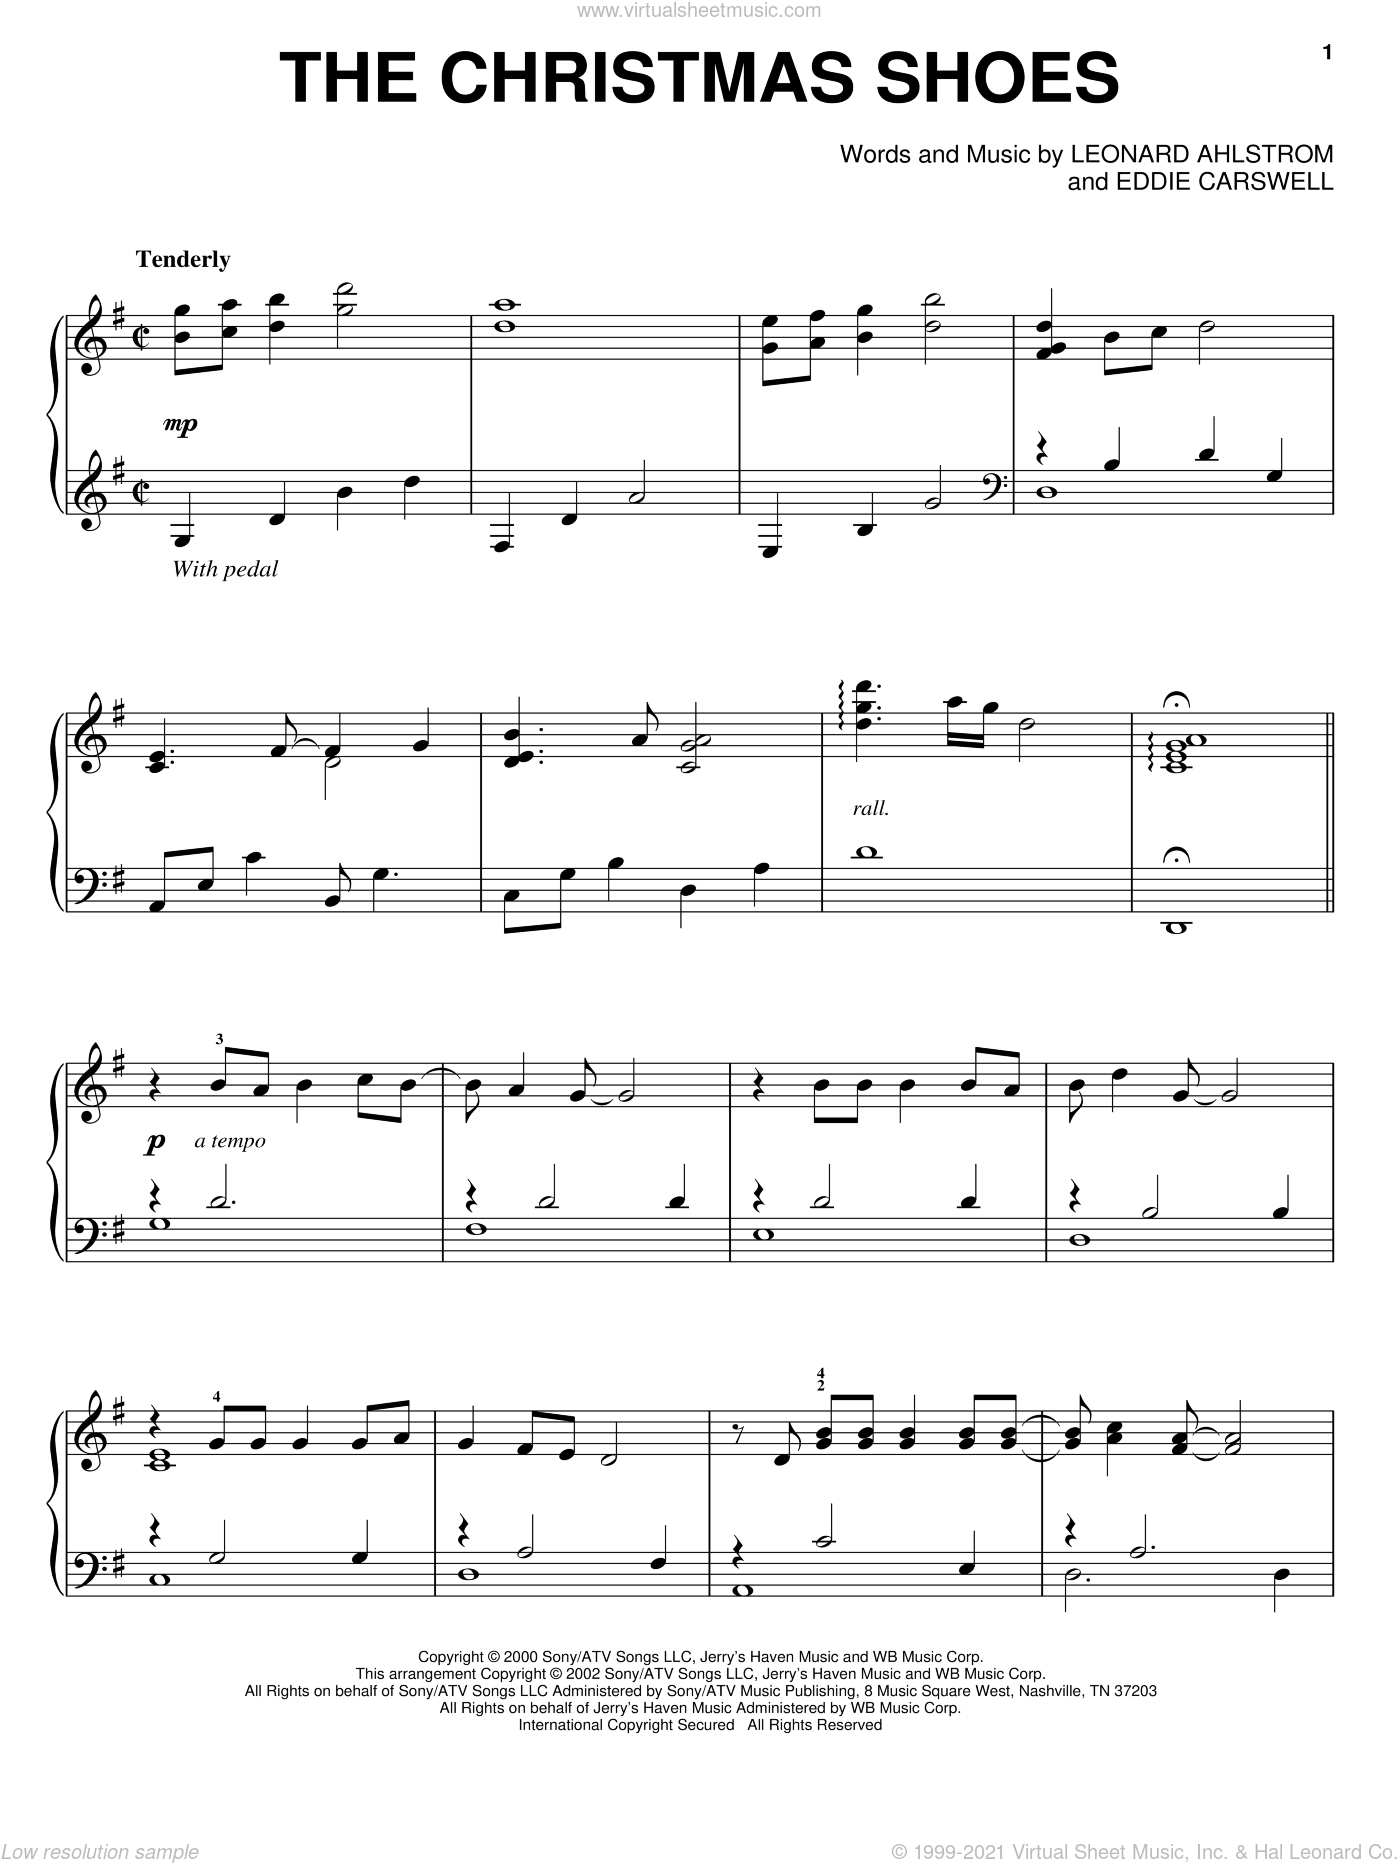 The Christmas Shoes sheet music for piano solo by 3 Of Hearts, Newsong, Eddie Carswell and Leonard Ahlstrom, intermediate skill level